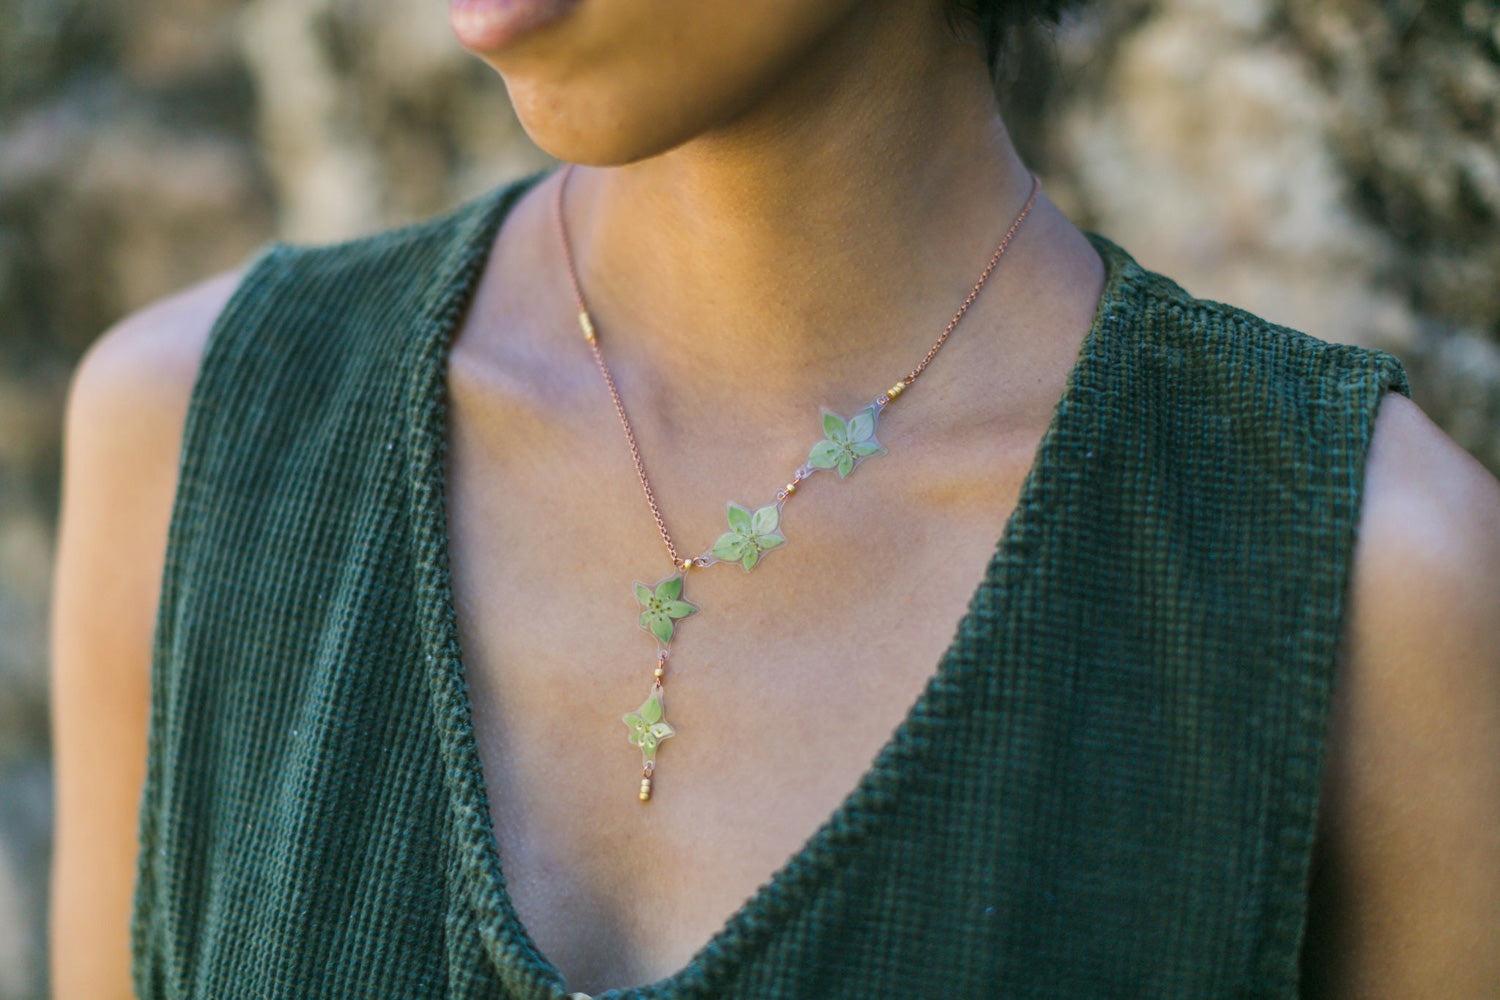 Green Bupleurum Flower Asymmetrical Beaded Necklace